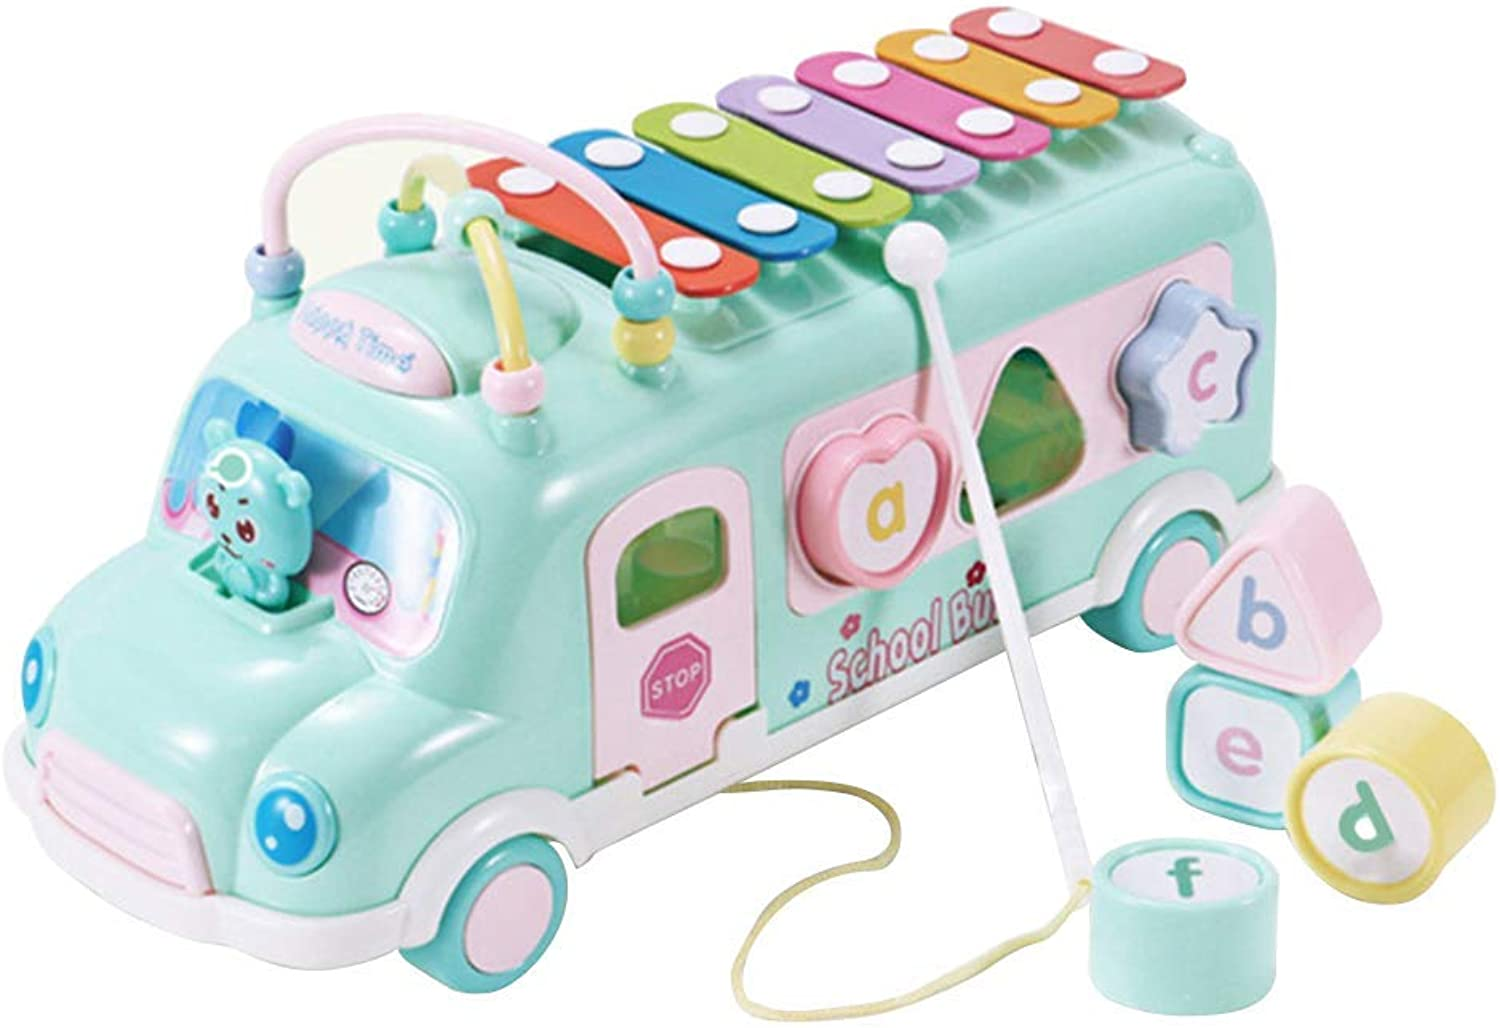 Intellectual Piano Bus Toy Knocking Piano Music Educational Toys for Baby Kids